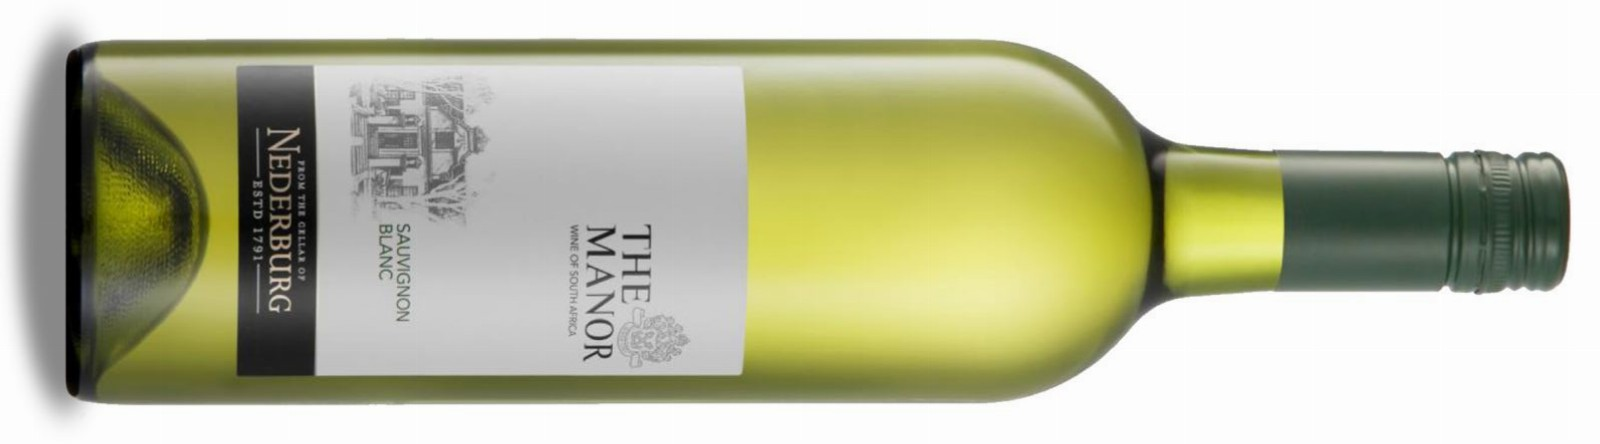 Nederburg The Manor Sauvignon Blanc 2012